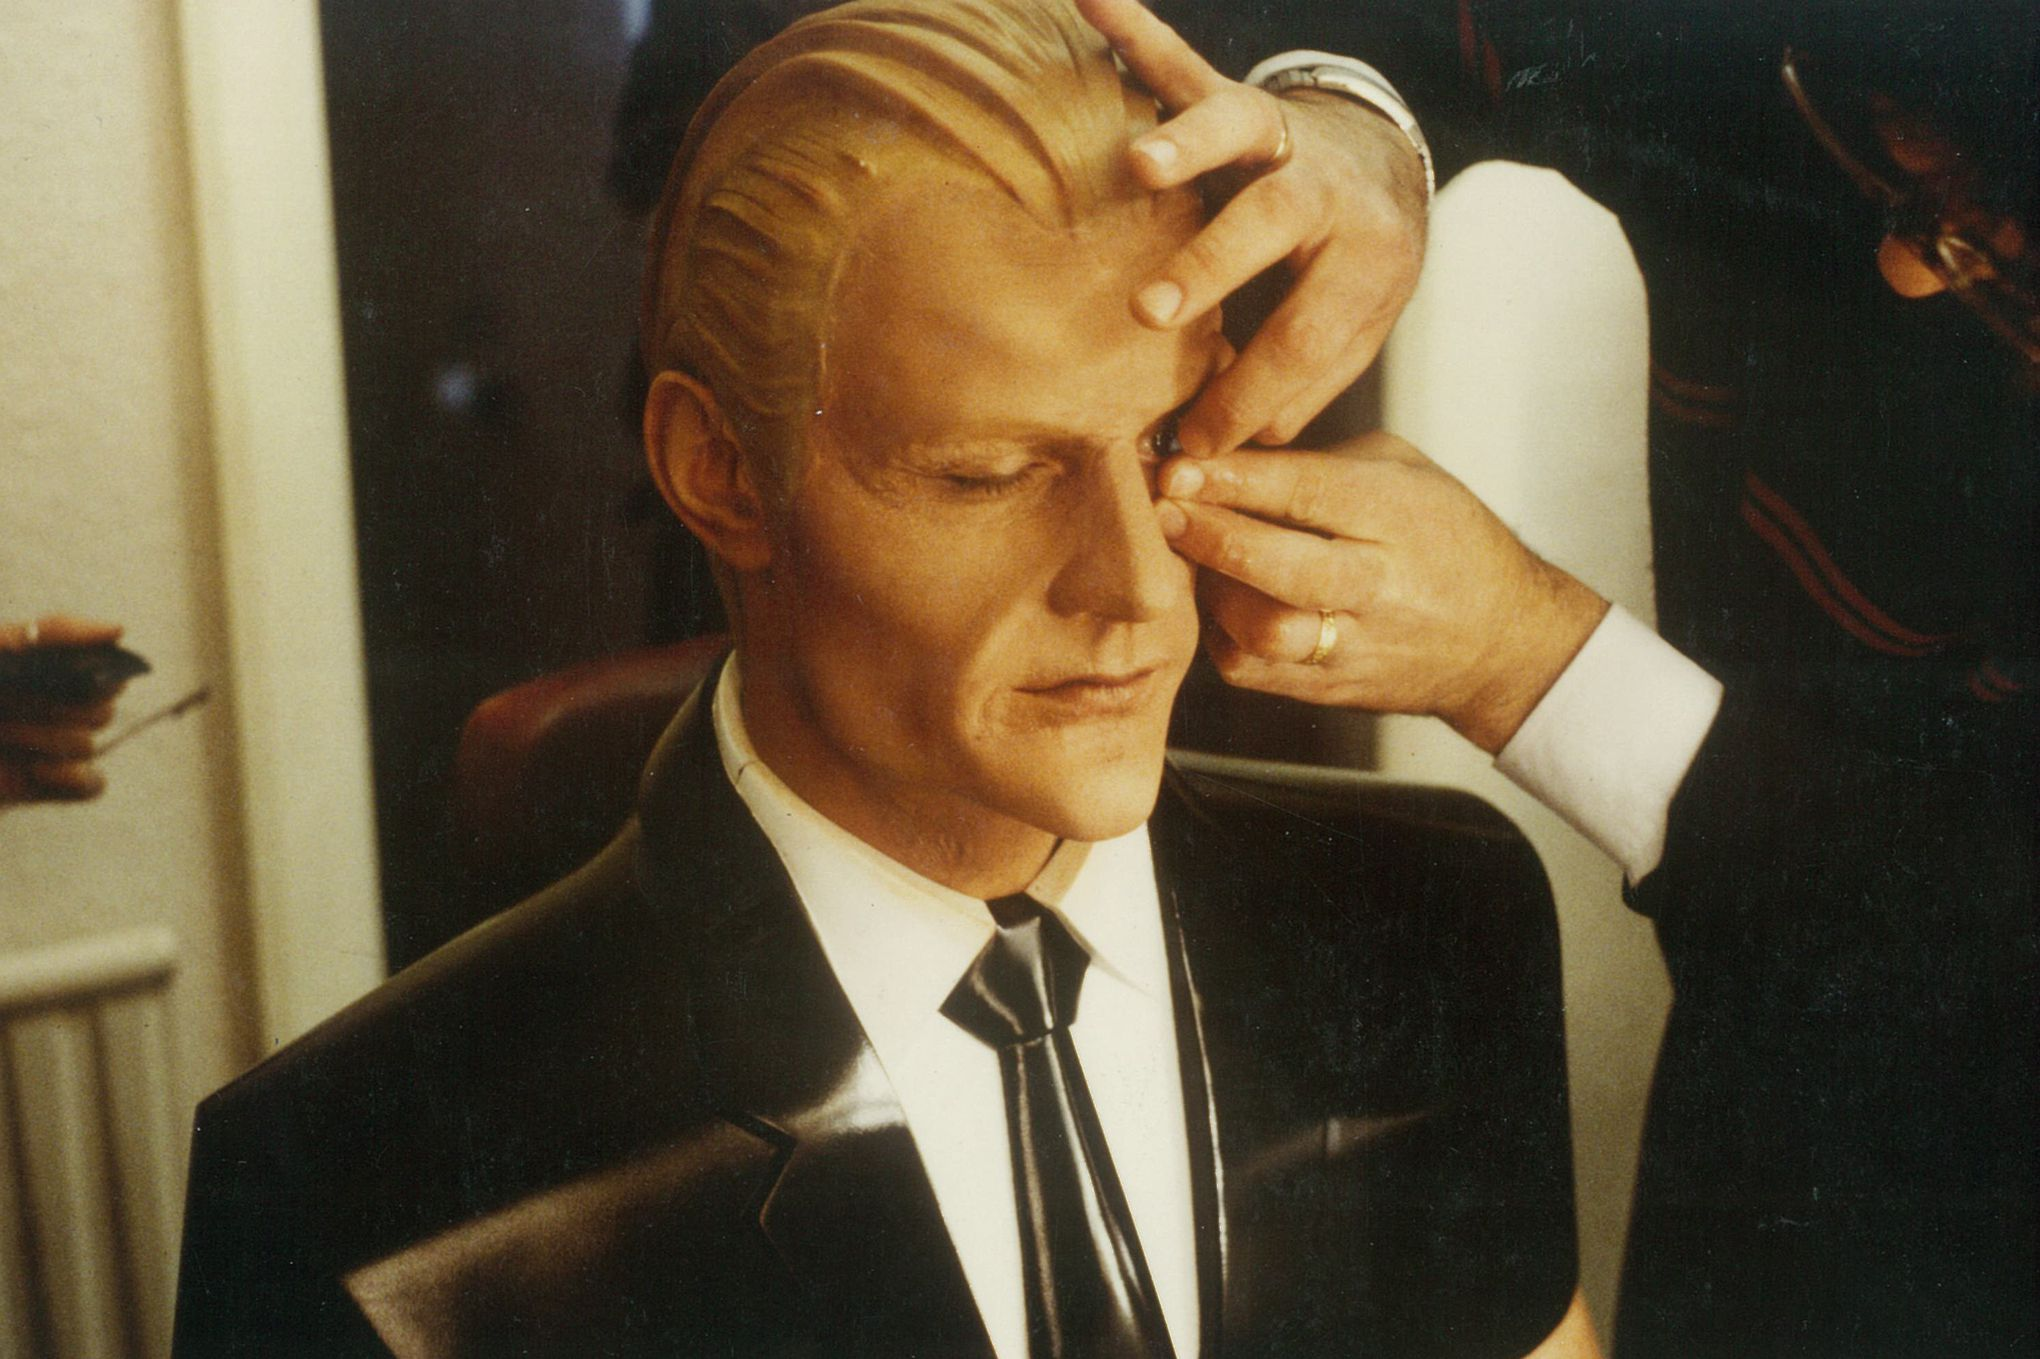 max headroom the definitive history of the 1980s digital icon max headroom make up and design images